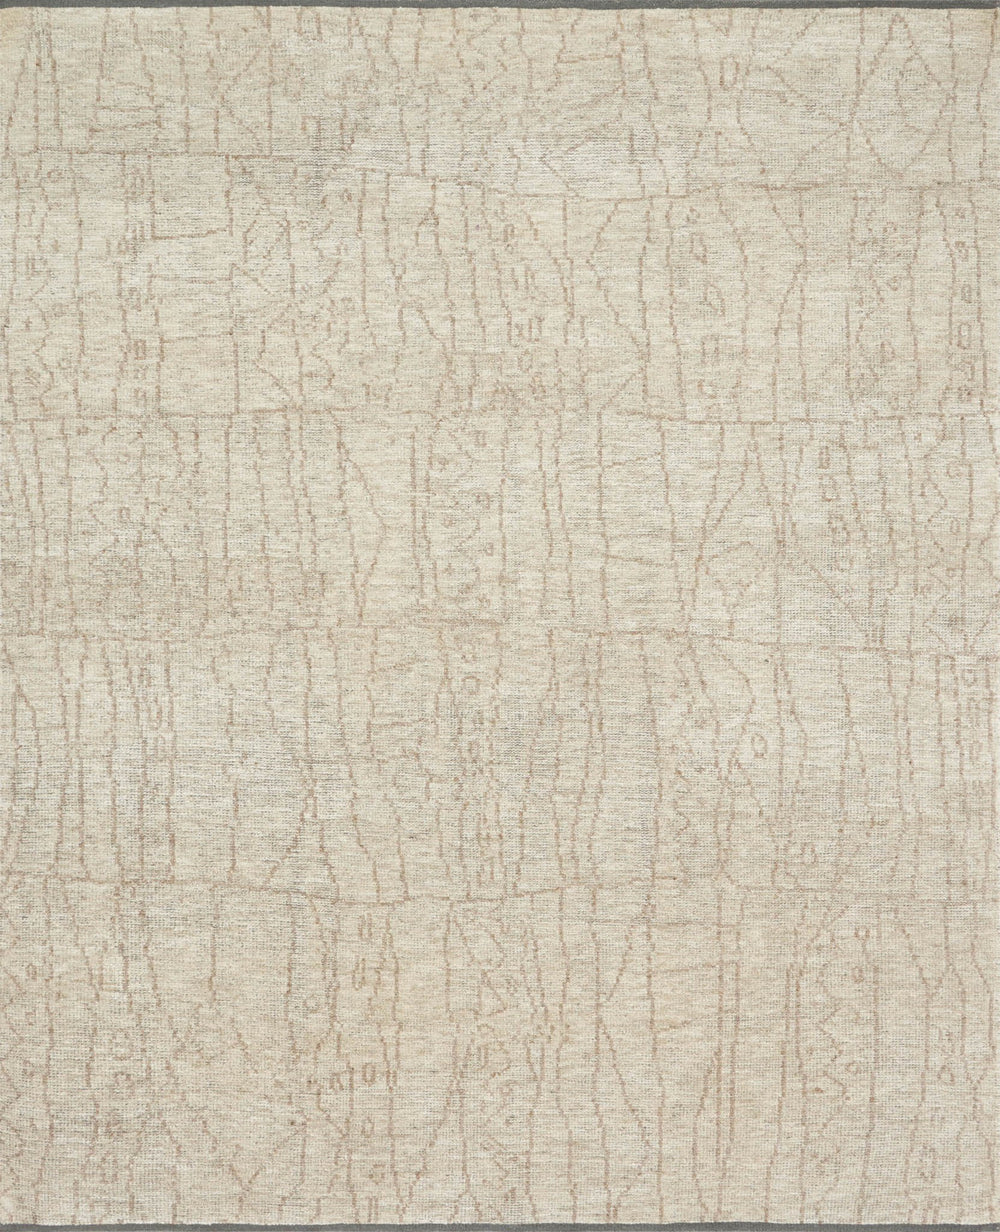 Drawing inspiration from tribal influences, the Odyssey Collection combines relaxed linear pattern with a sophisticated color palette. Each Odyssey rug, which is hand-knotted of wool and viscose from bamboo, is crafted entirely by hand by master artisans in India.  Hand Knotted 70% Viscose from Bamboo | 30% Wool OD-03 Sand/Taupe